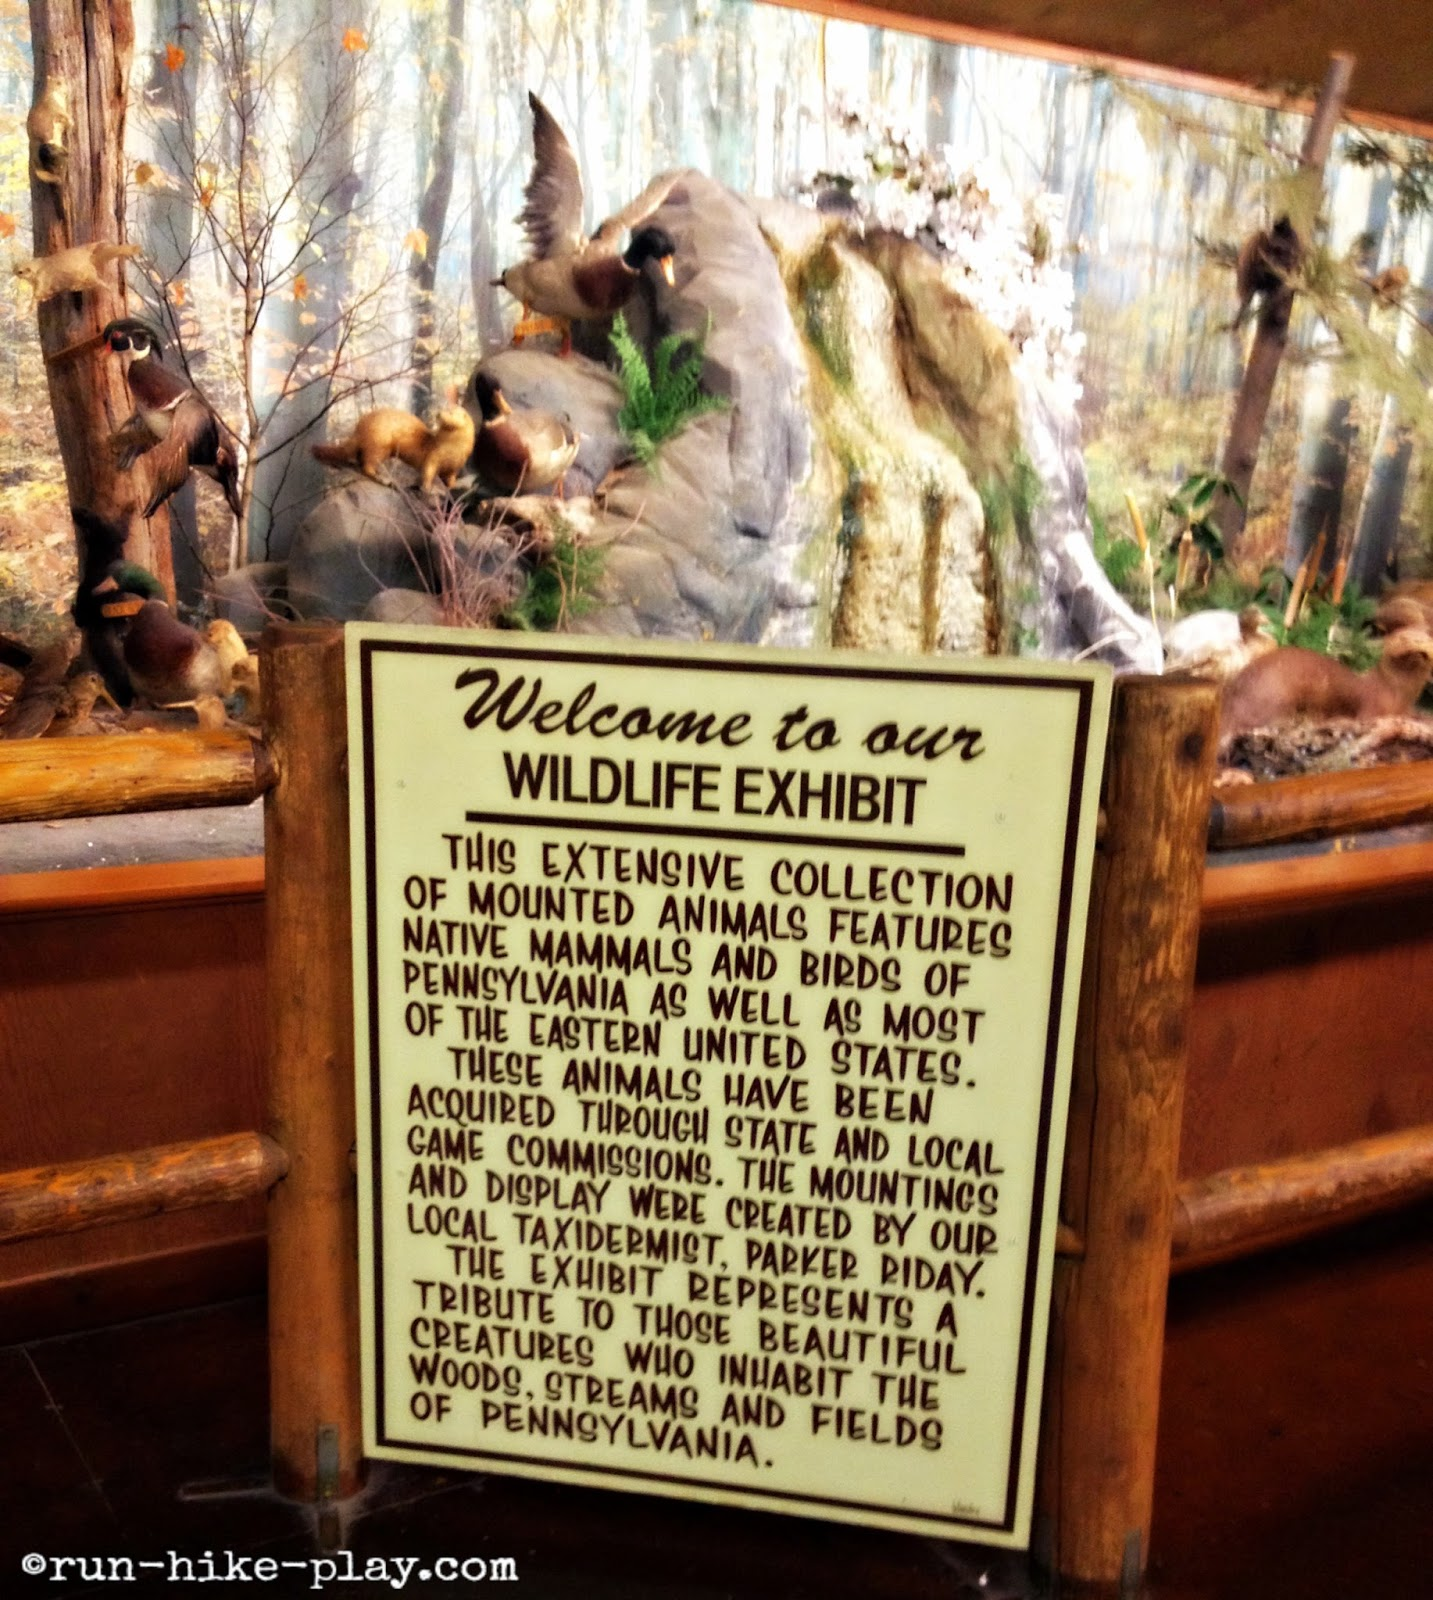 Bushkill Falls Wildlife Exhibit